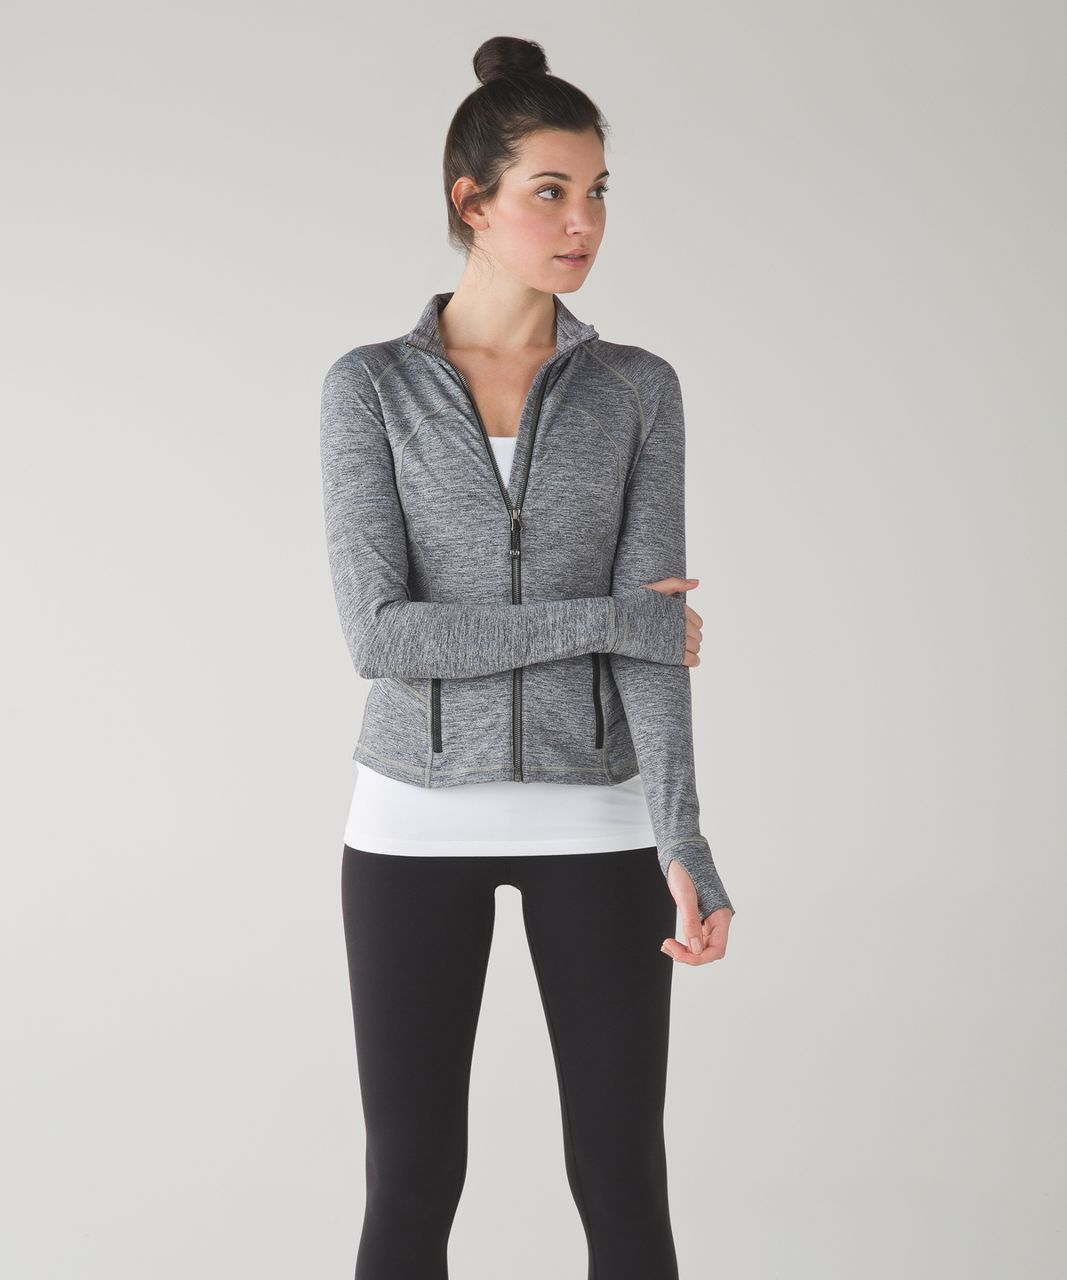 Lululemon Hustle In Your Bustle Jacket - Space Dye Camo Black Dark Slate